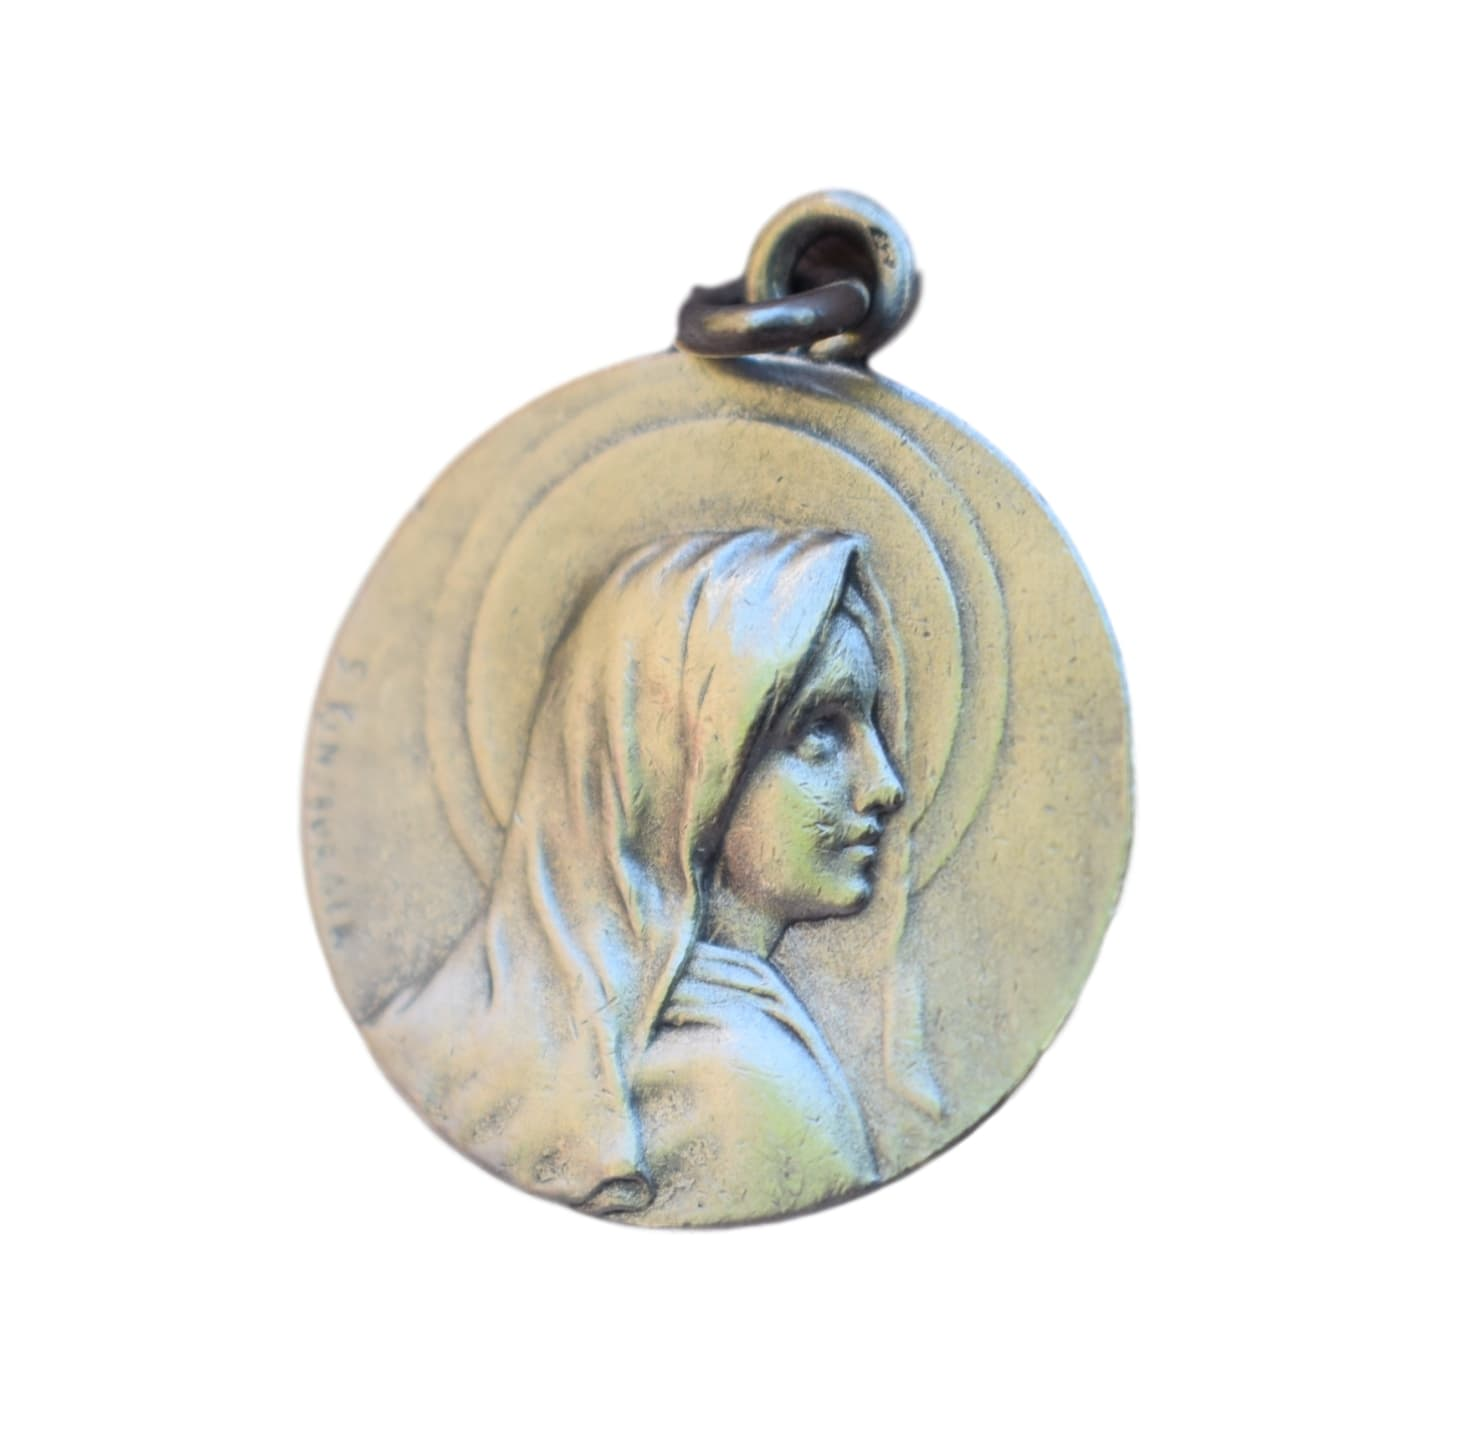 French Antique Sterling Silver Medal by Sylvain Kinsburger - Our Lady Virgin Mary Charm - Communion Baptism Gift Pendant Dated 1913